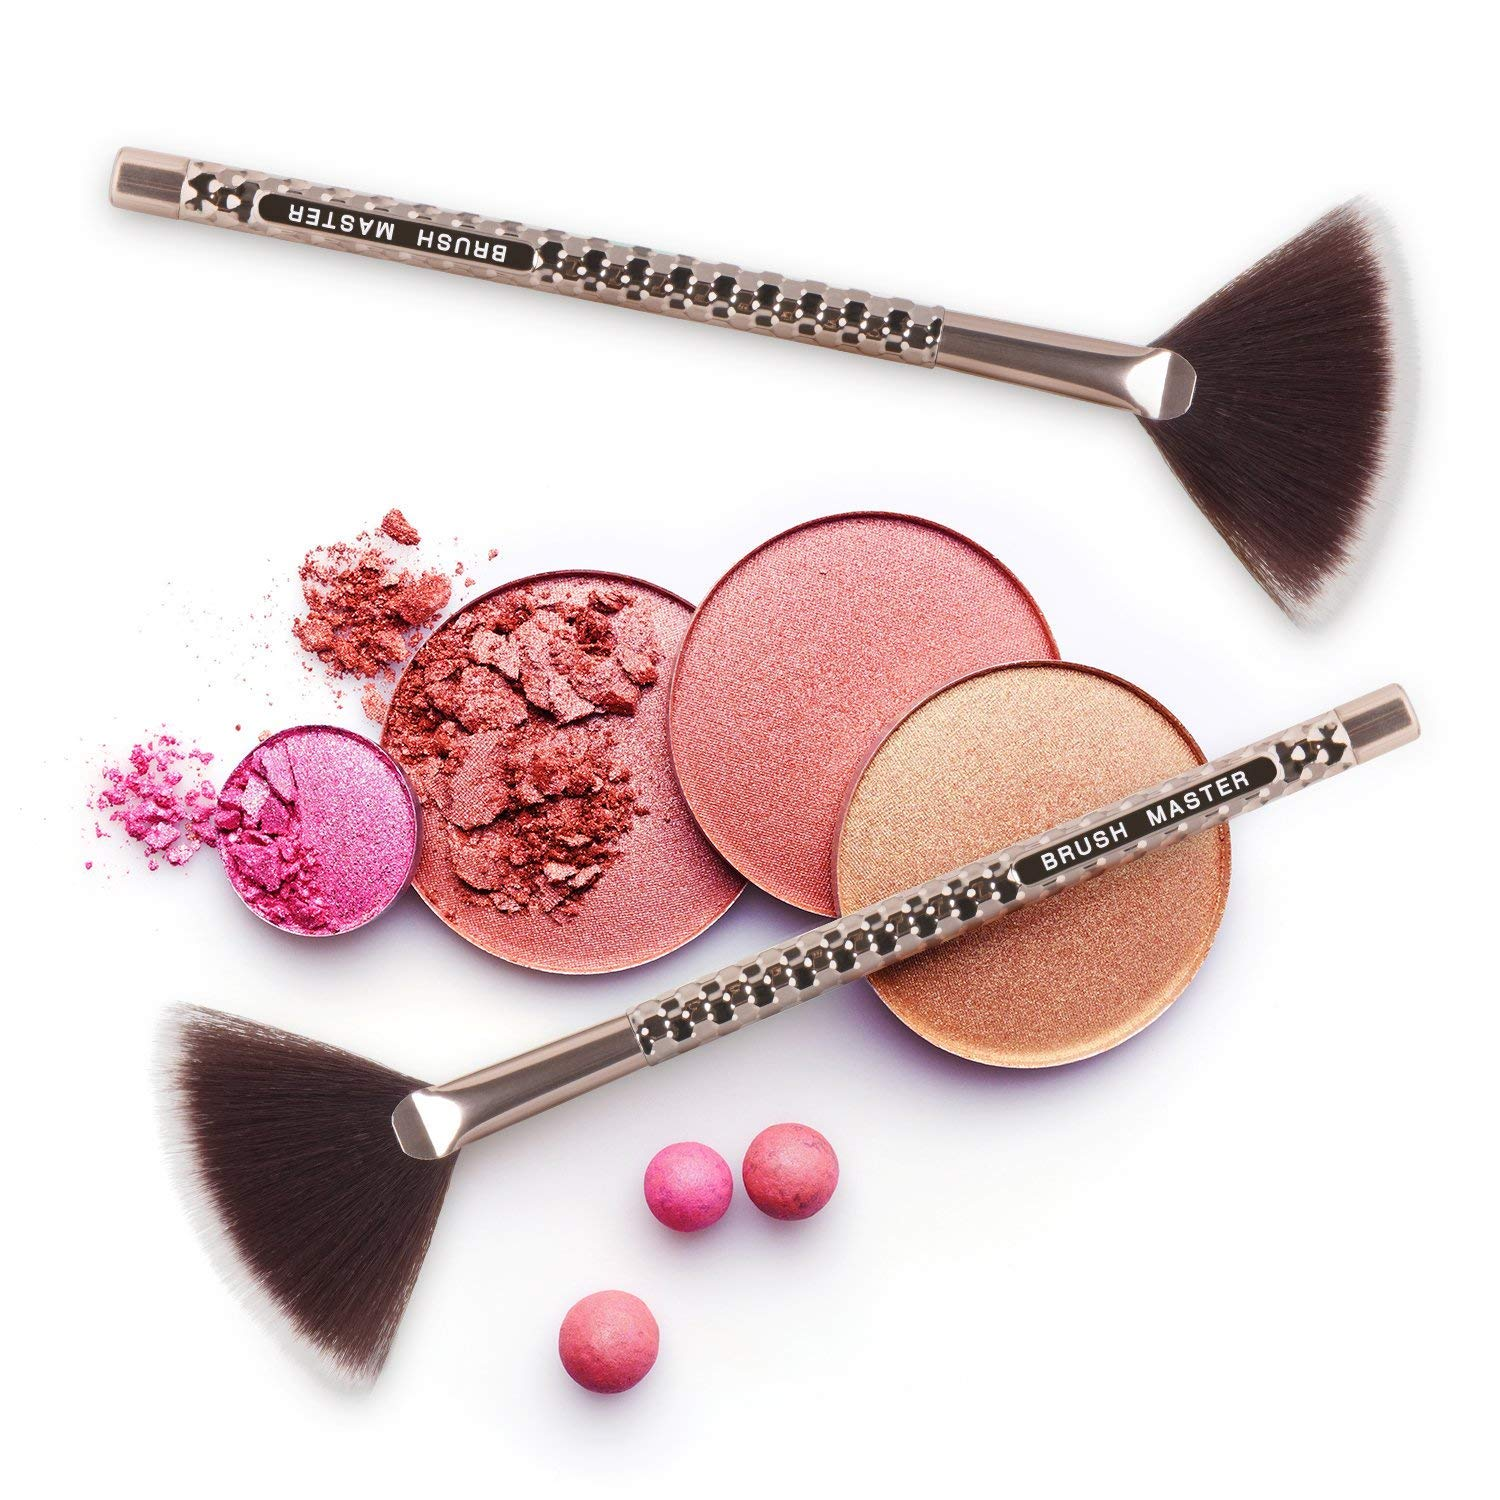 Foundation Makeup Brush Flat Kabuki — Foundation Cosmetic Contour Blending Makeup Brush — Perfect with Soft Synthetic Bristles for Liquid Cream and Powder by B M Brush Master (Image #6)